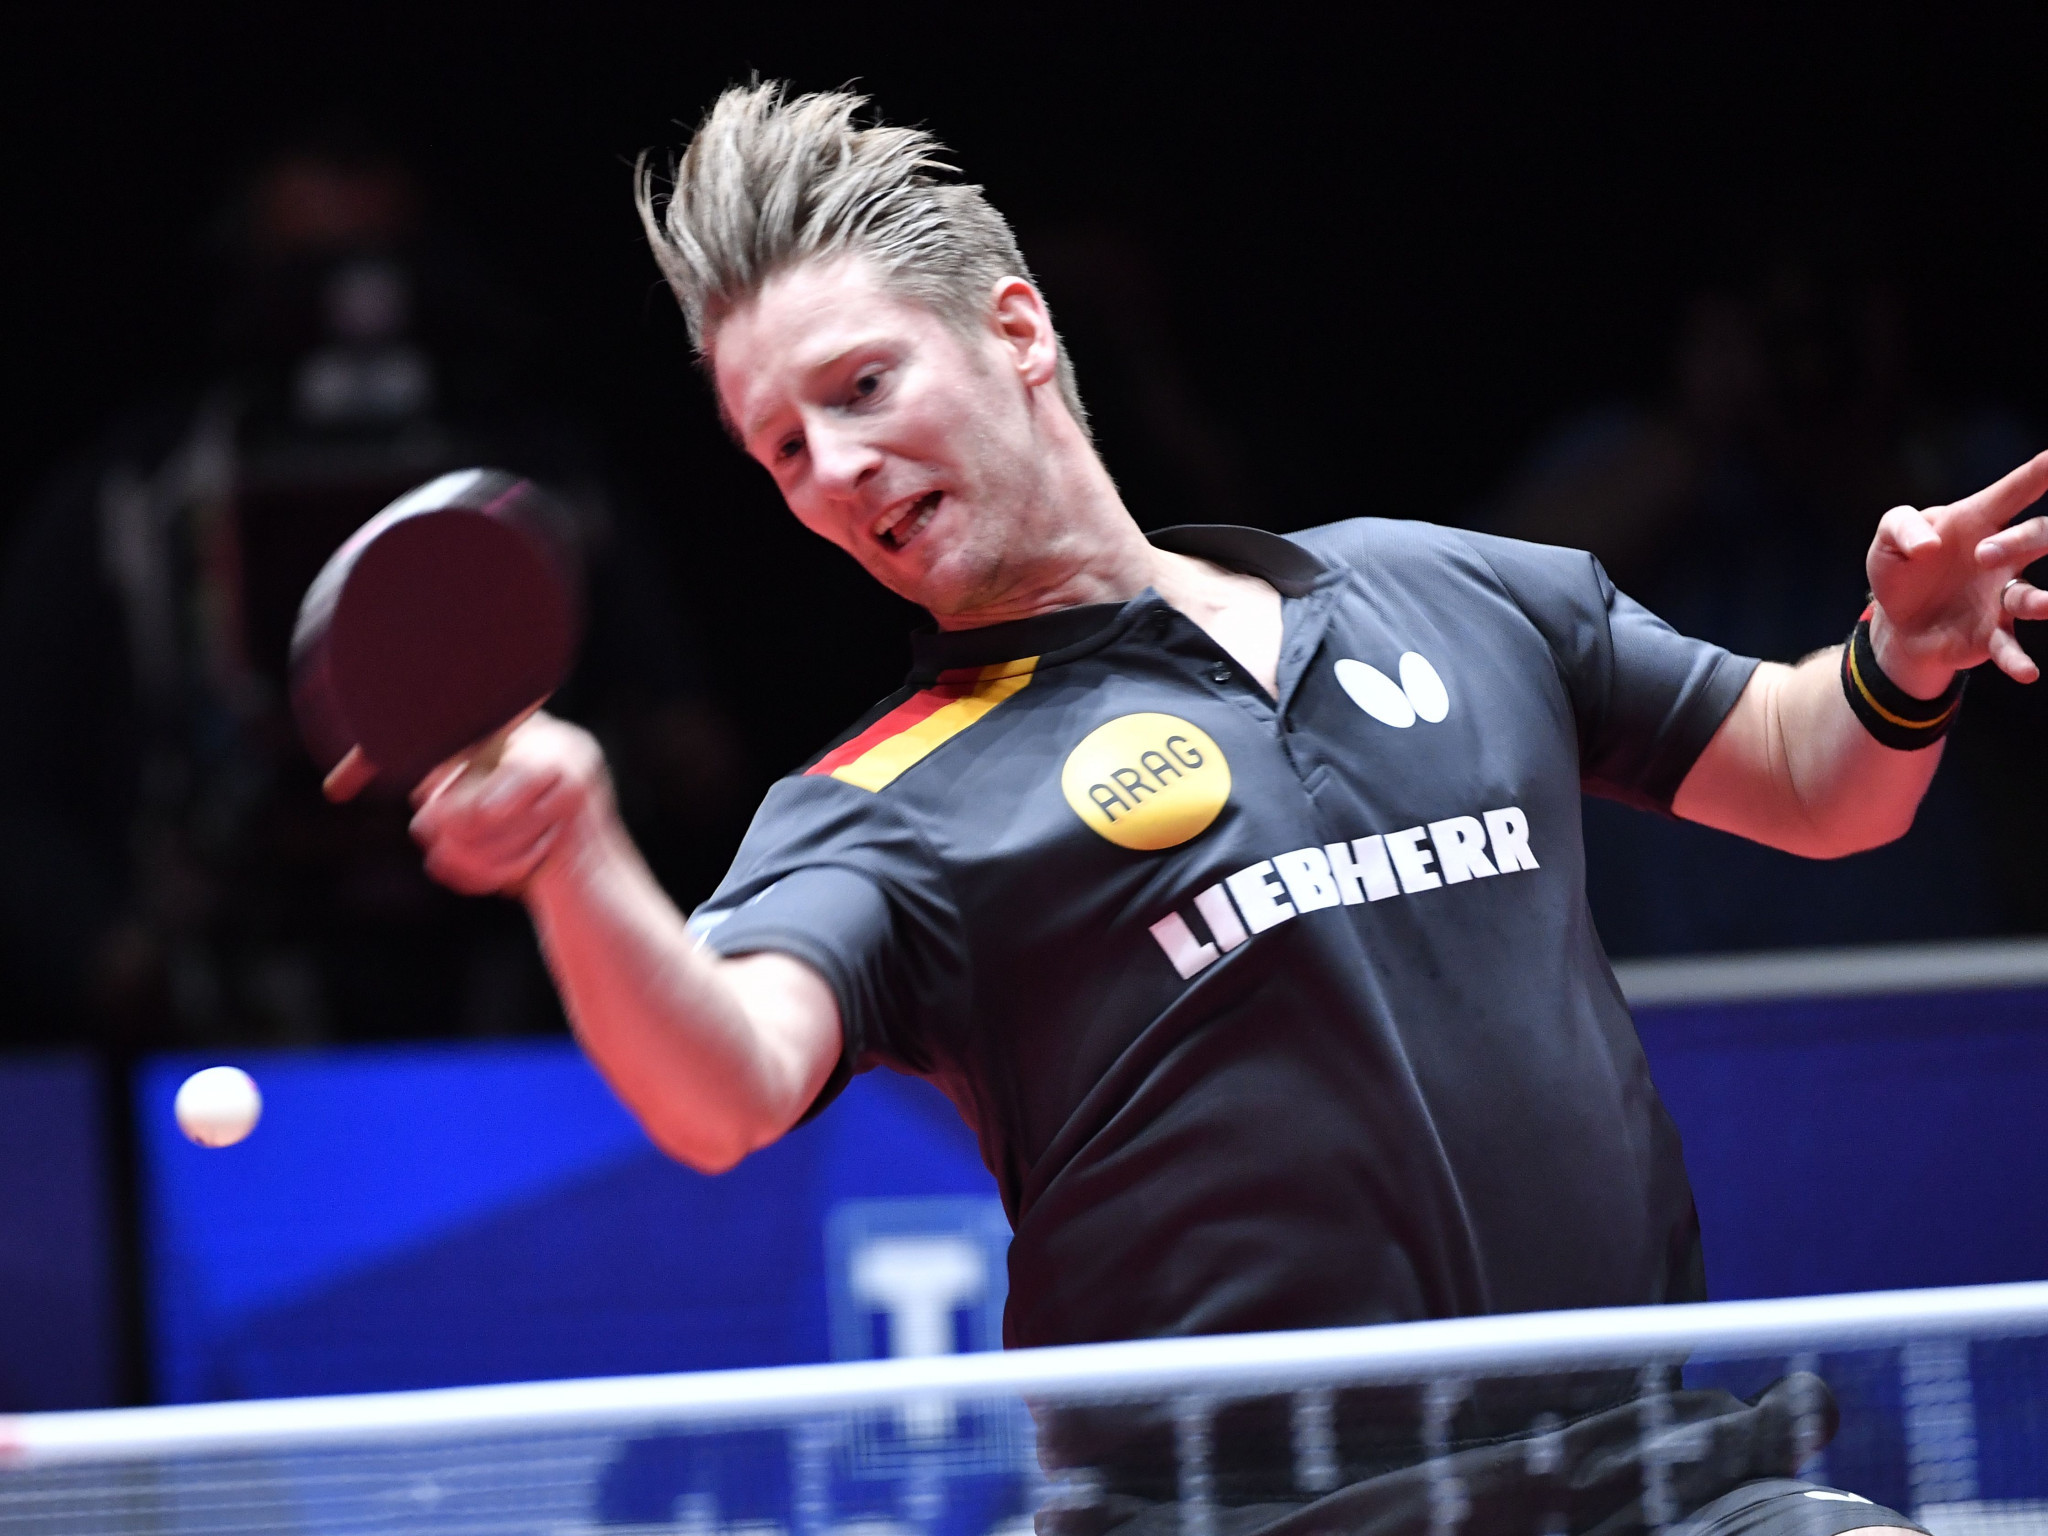 Düsseldorf and Durban set for virtual bidding war for 2023 World Table Tennis Championships